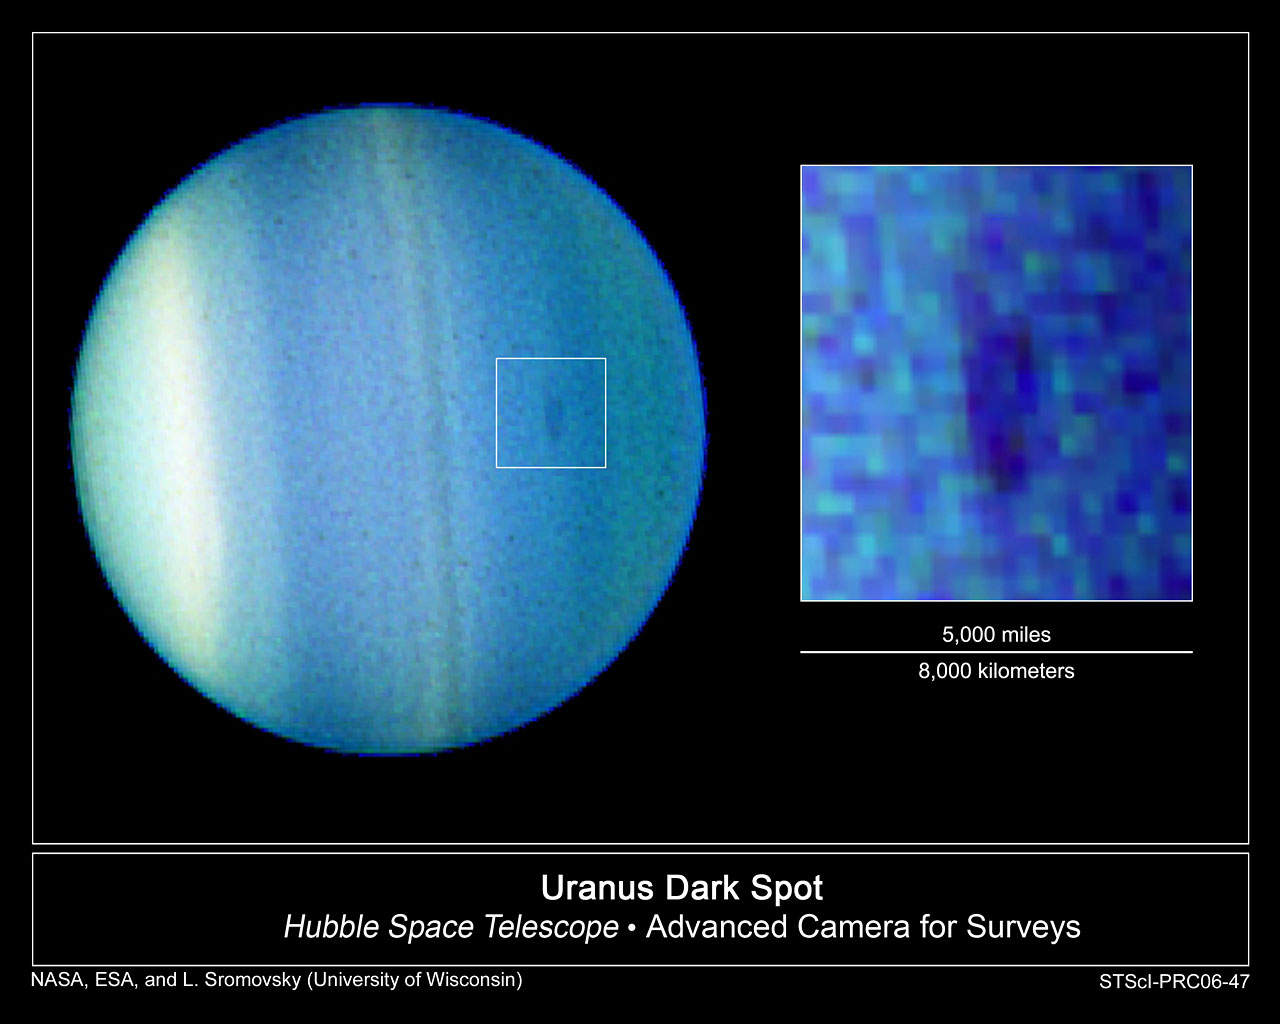 Hubble Discovers Dark Cloud in the Atmosphere of Uranus